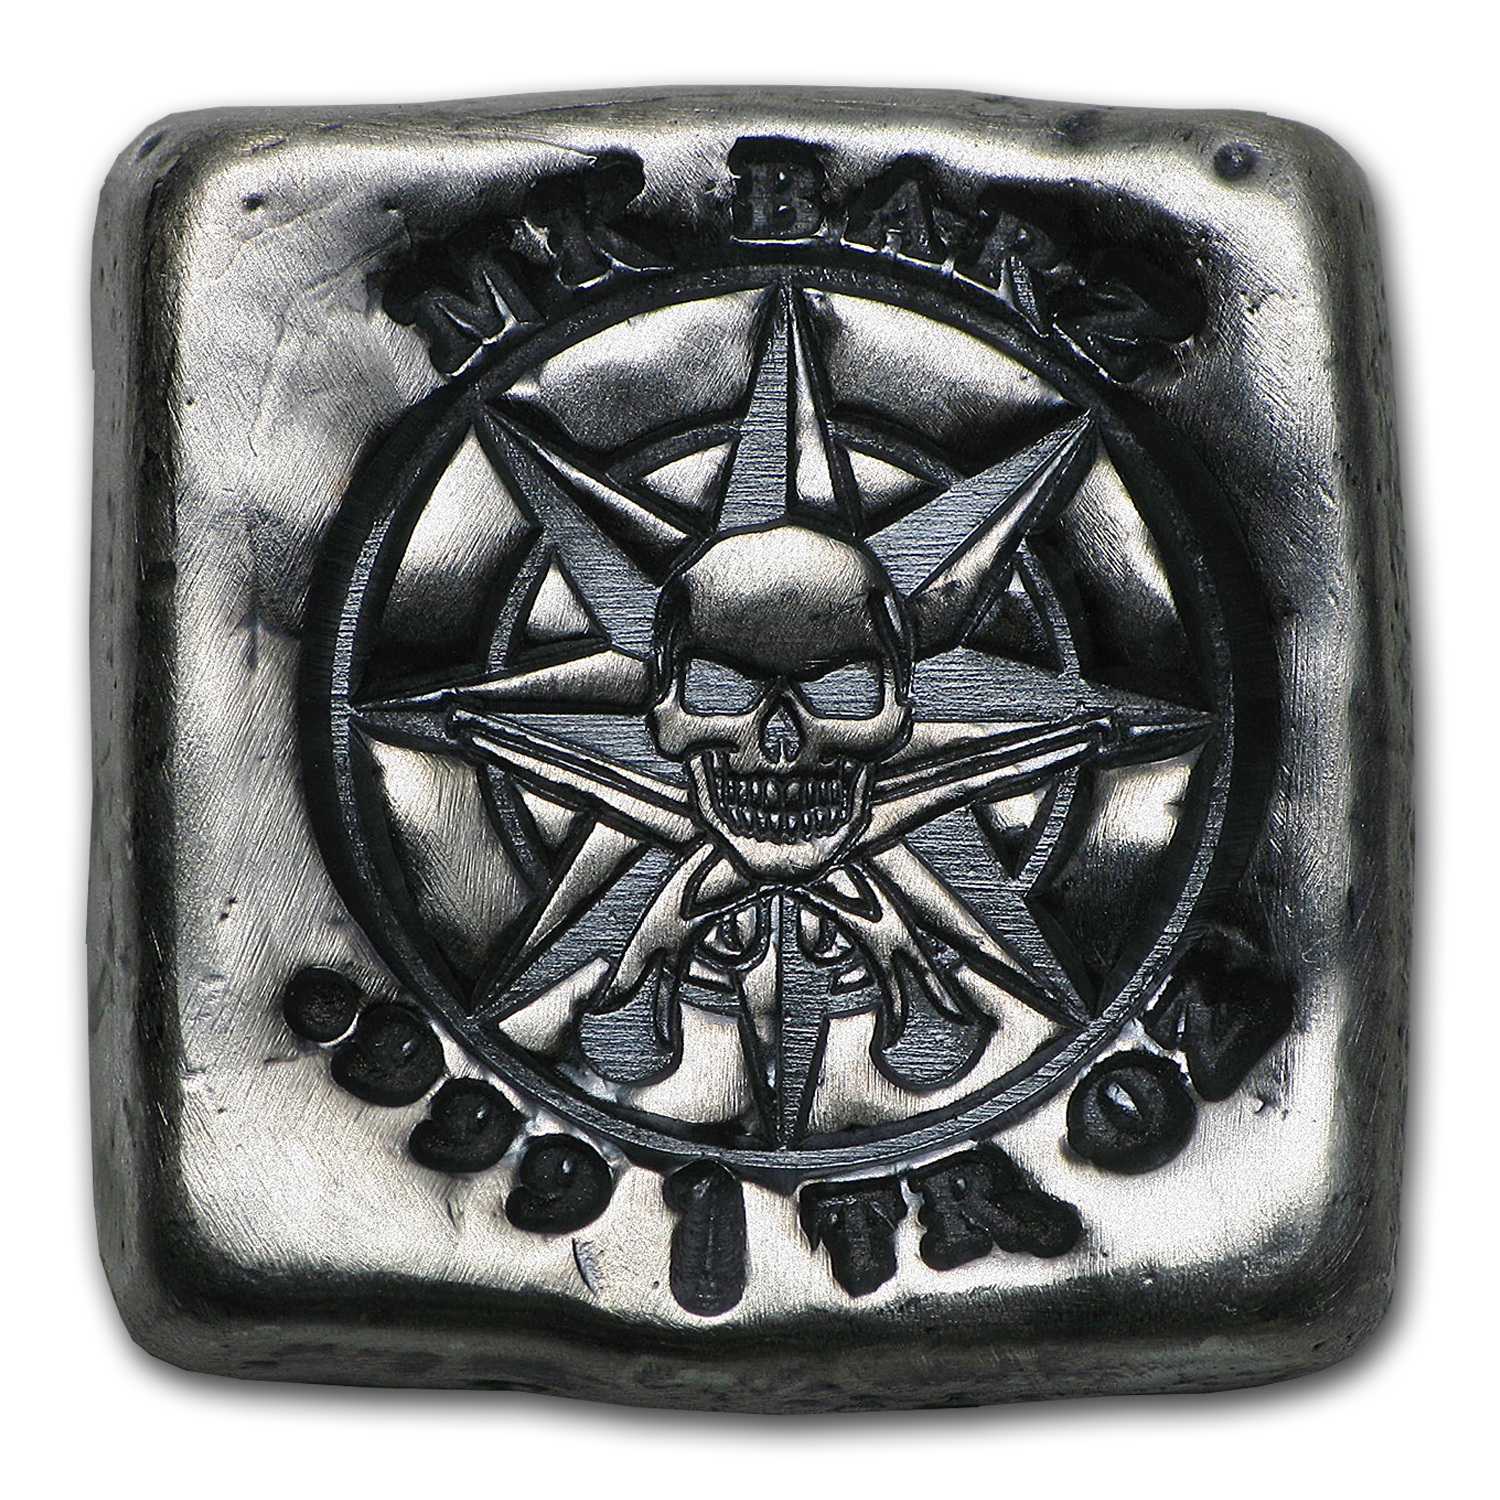 1 oz Silver Square - MK Barz & Bullion (Pirate Compass)